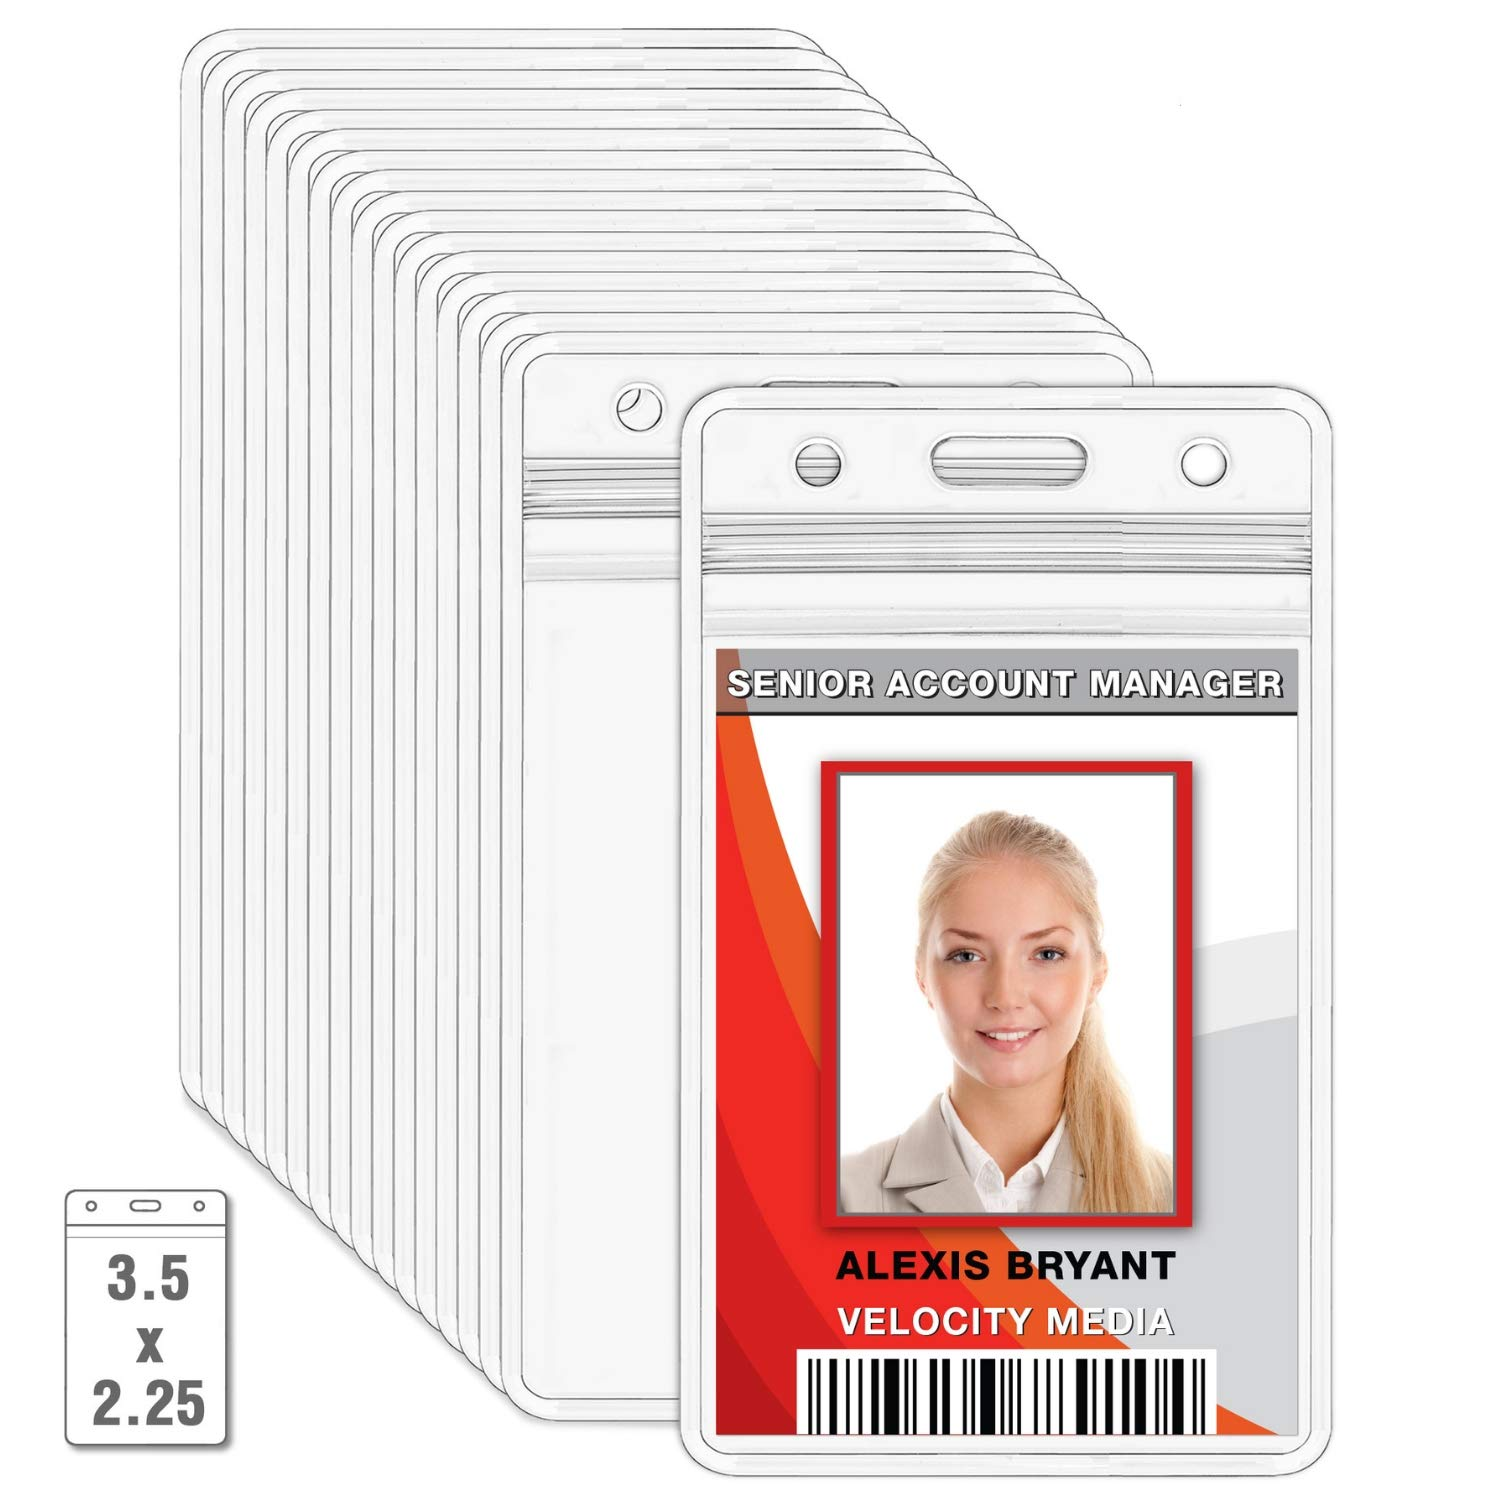 MIFFLIN Plastic Waterproof ID Badge Holders (Clear, 3.6x2.4 inch, 100 Pack), Vertical Hanging Card Holder with Zipper, Resealable Bulk Nametag Holders by MIFFLIN